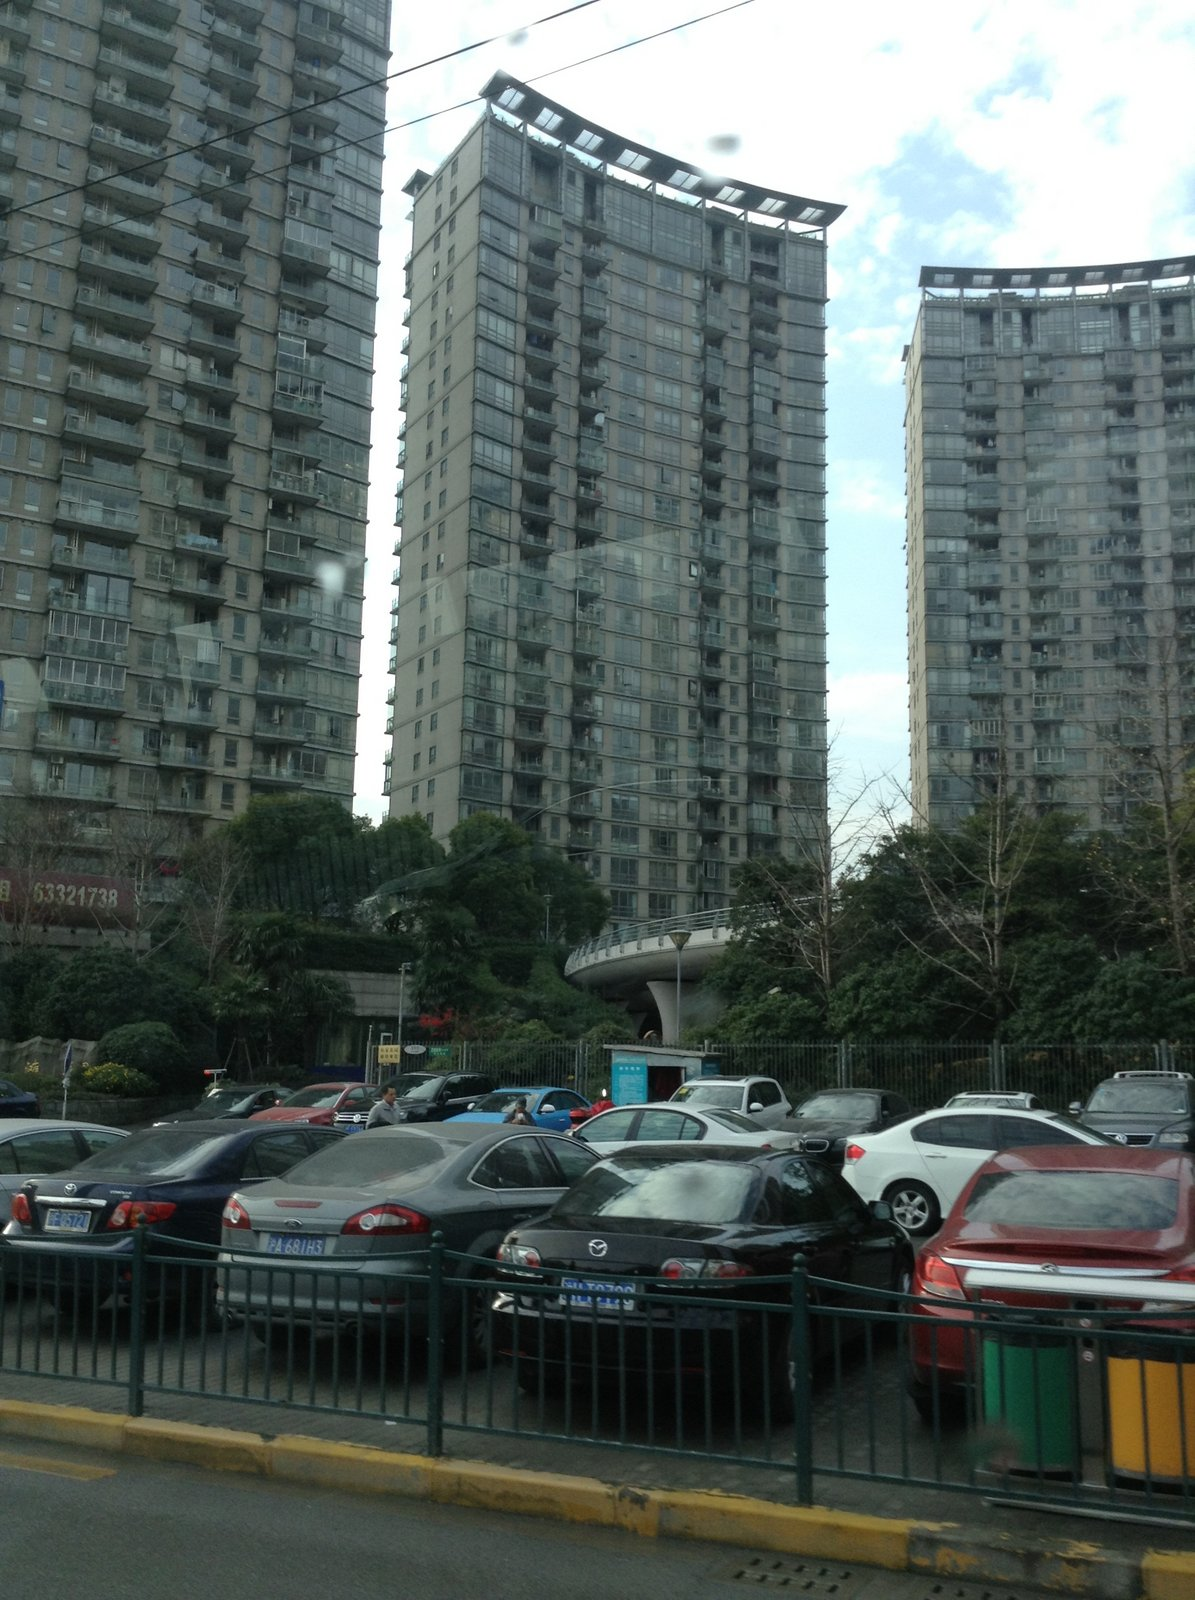 Cars and Bikes Share the Roads in China. (Photo by Ann Ragland/NNPA)